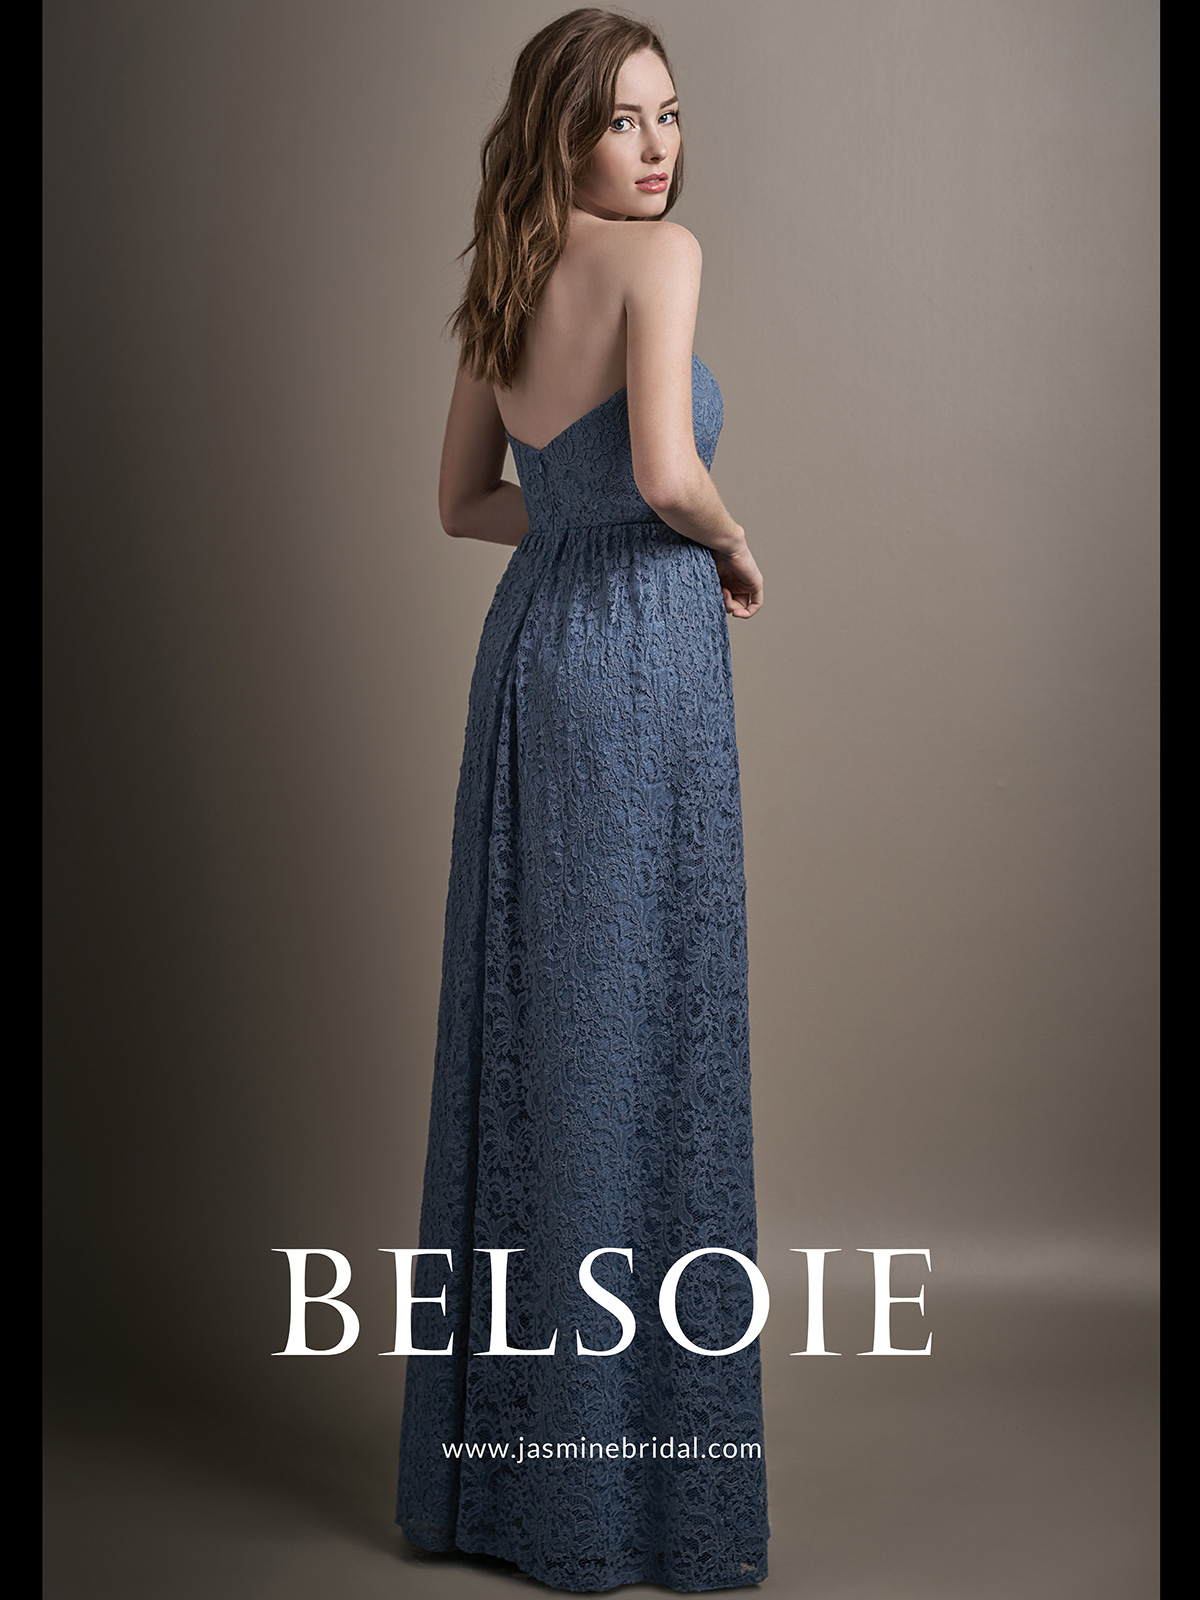 Belsoie l194017 sweetheart a line bridesmaid dressdimitradesigns lace a line belsoie bridesmaid dress l194017 ombrellifo Choice Image